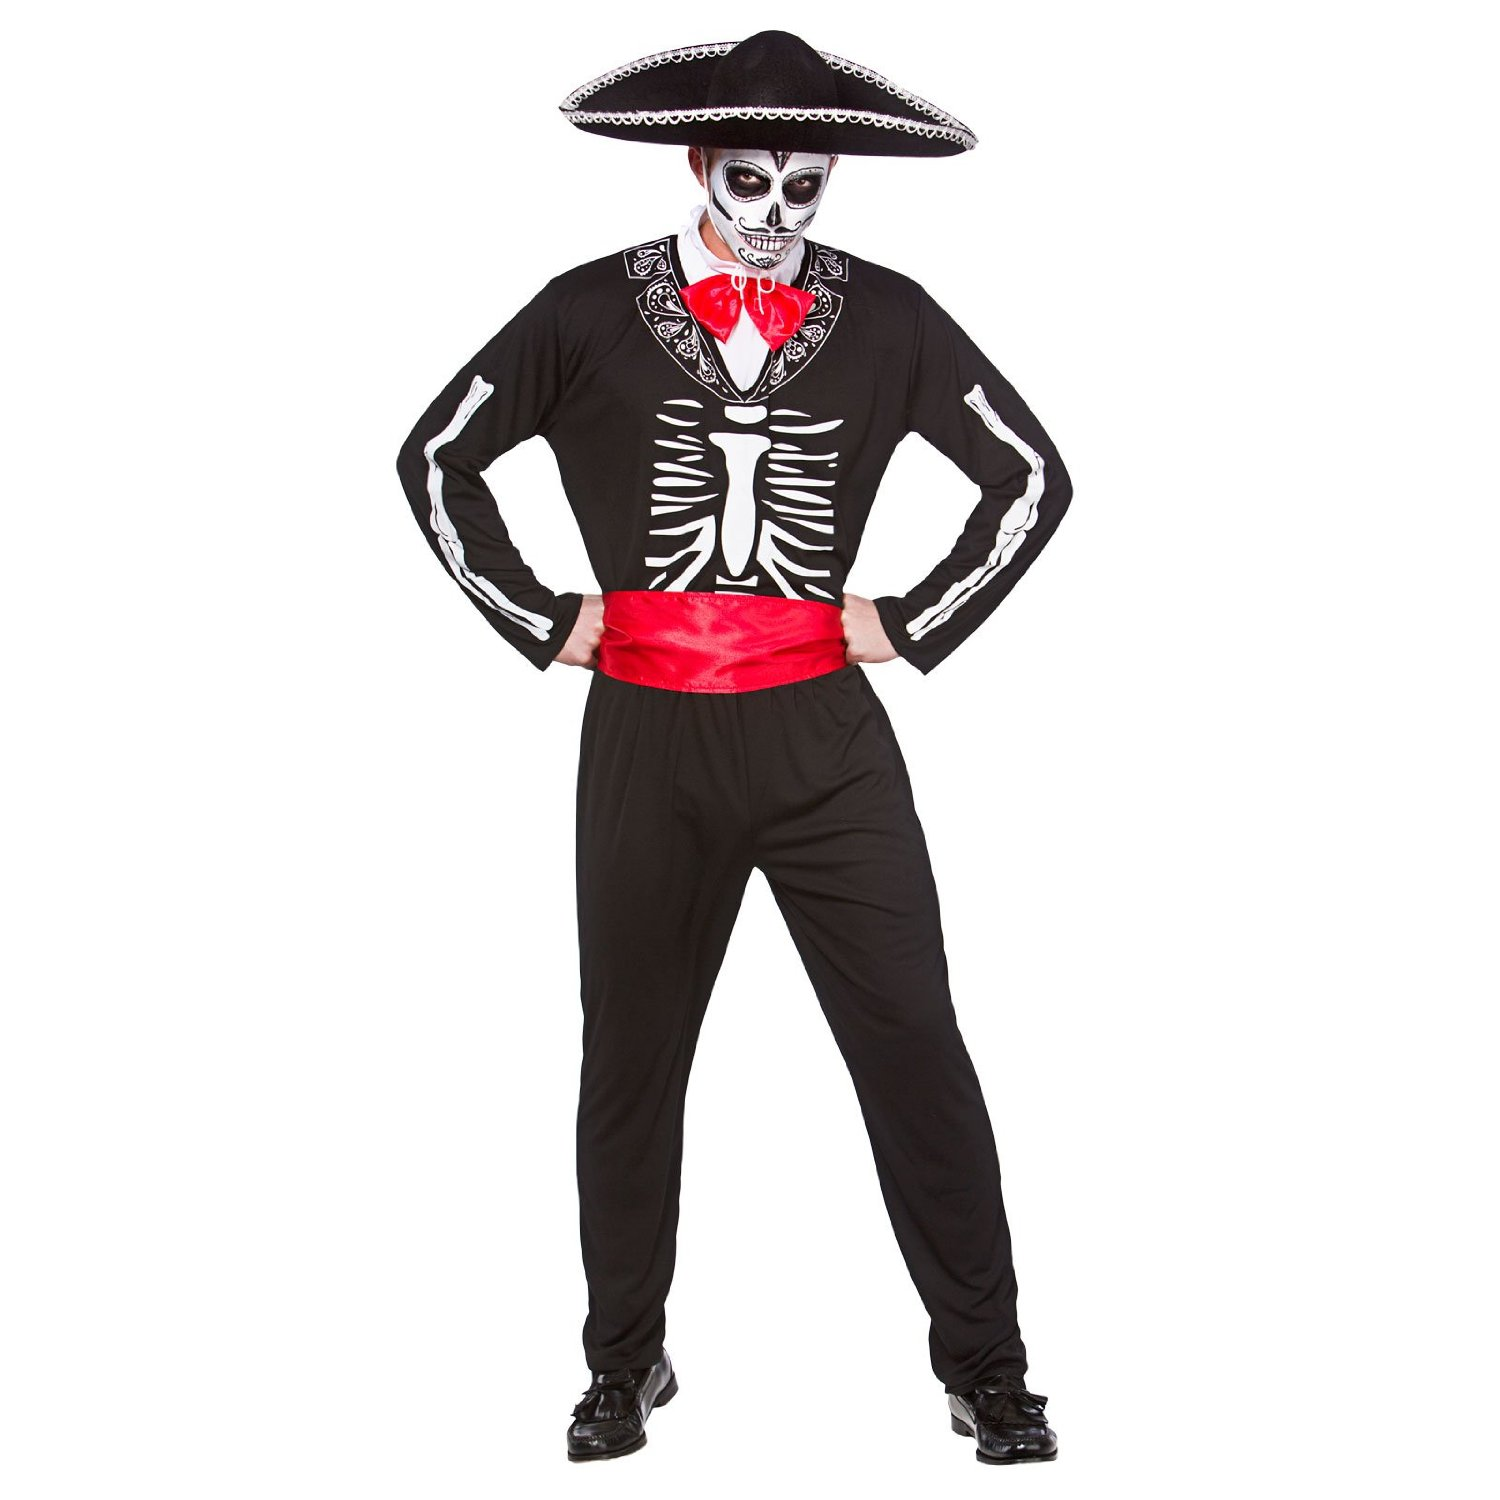 Adult Day of the dead senor costume hm5540